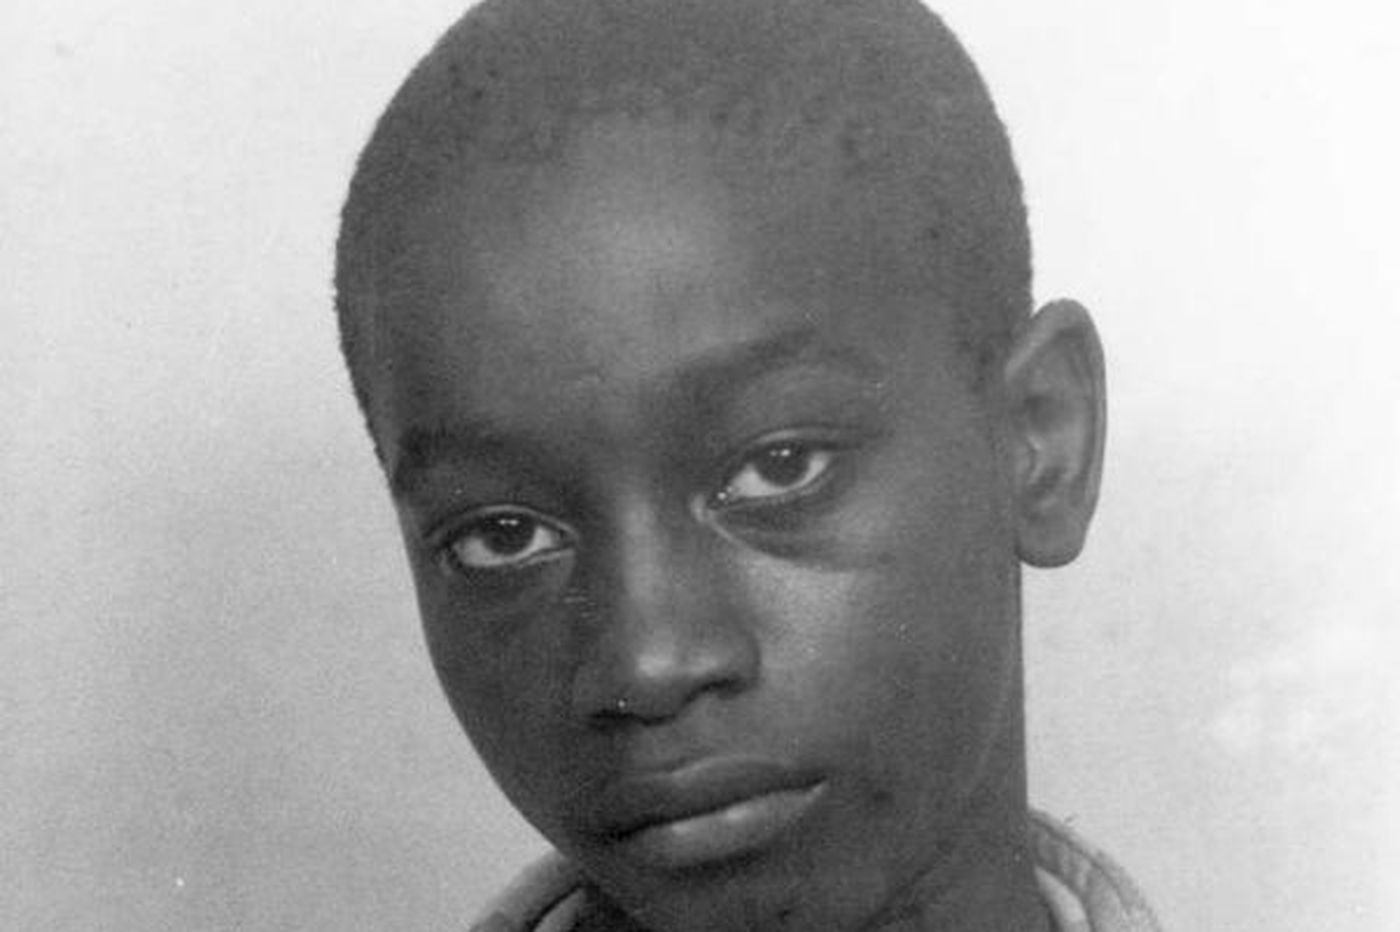 Judge: Boy, 14, shouldn't have been executed in 1944